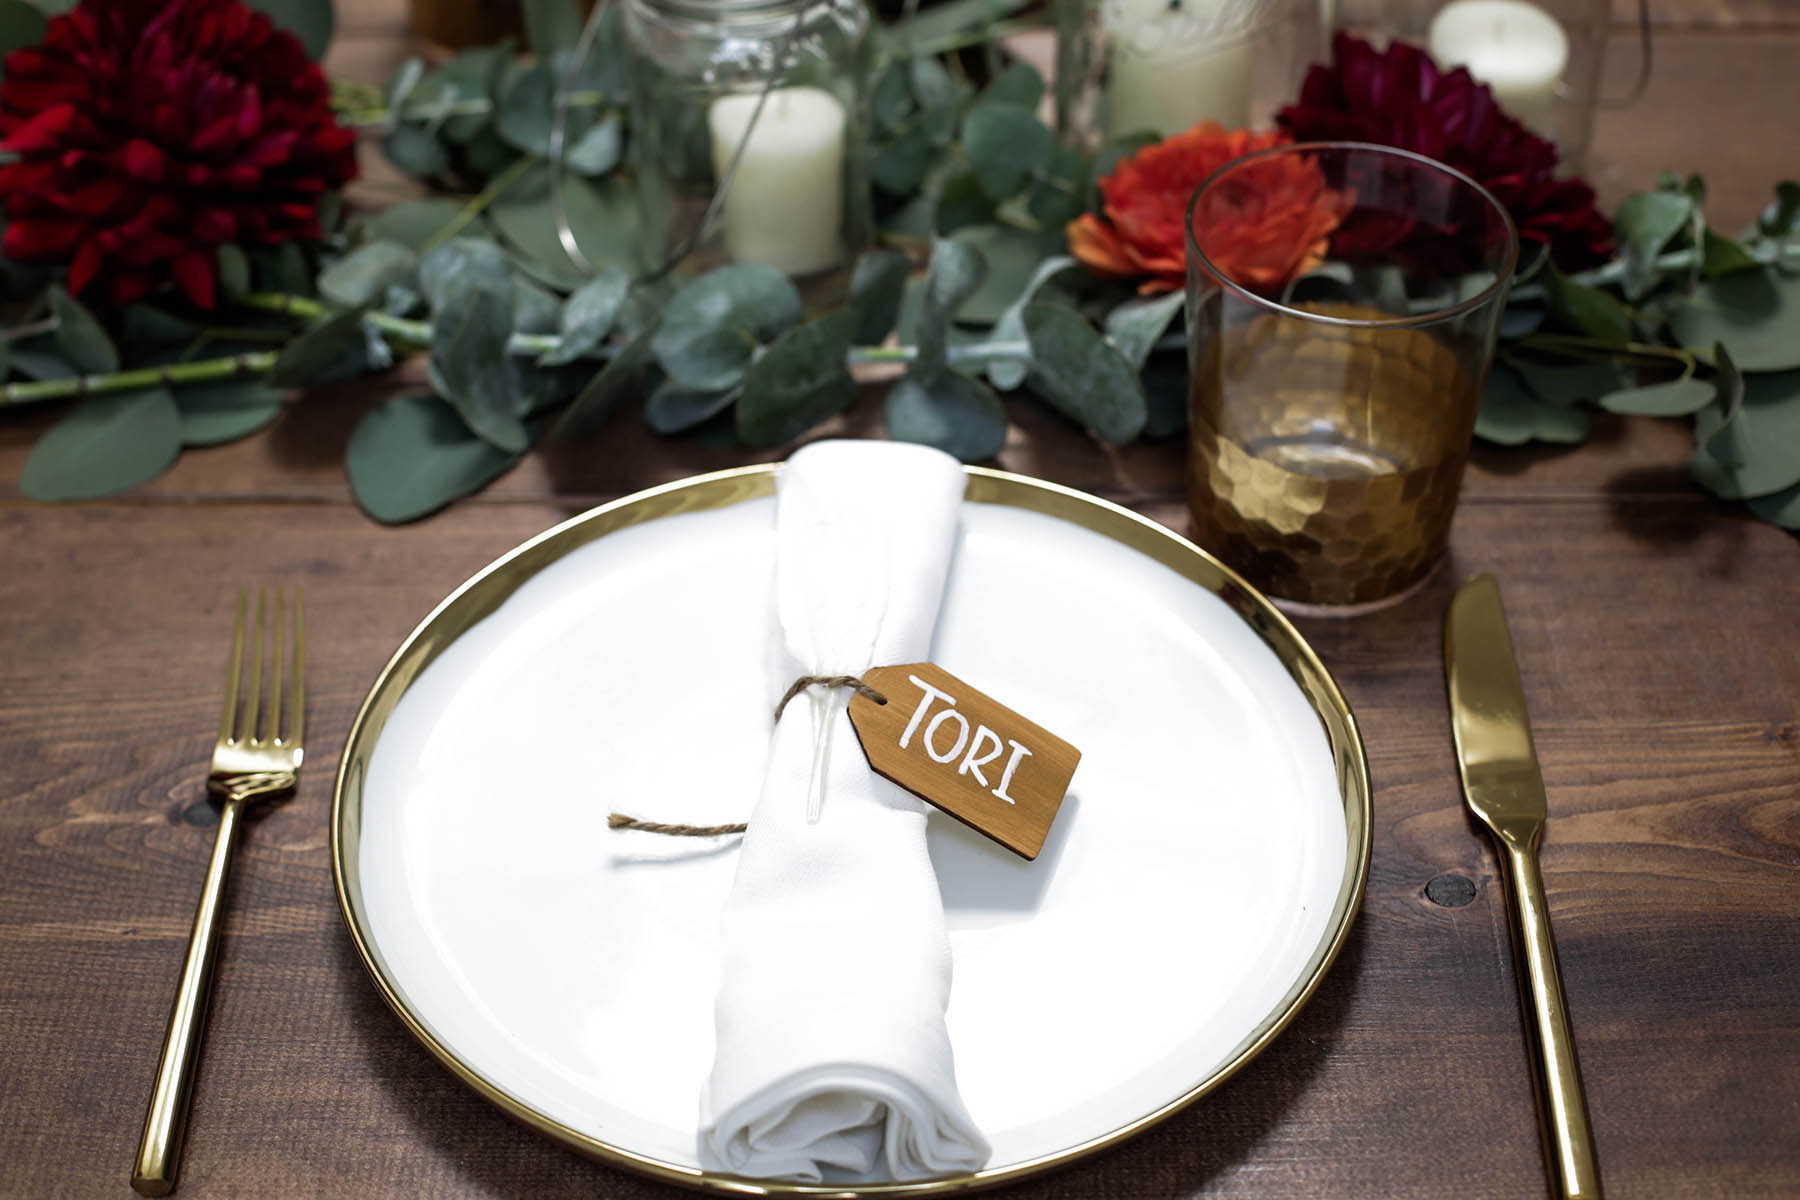 DIY name tags for natural bohemian holiday tablescape with gold flatware, candles, mason jars, florals and eucalyptus